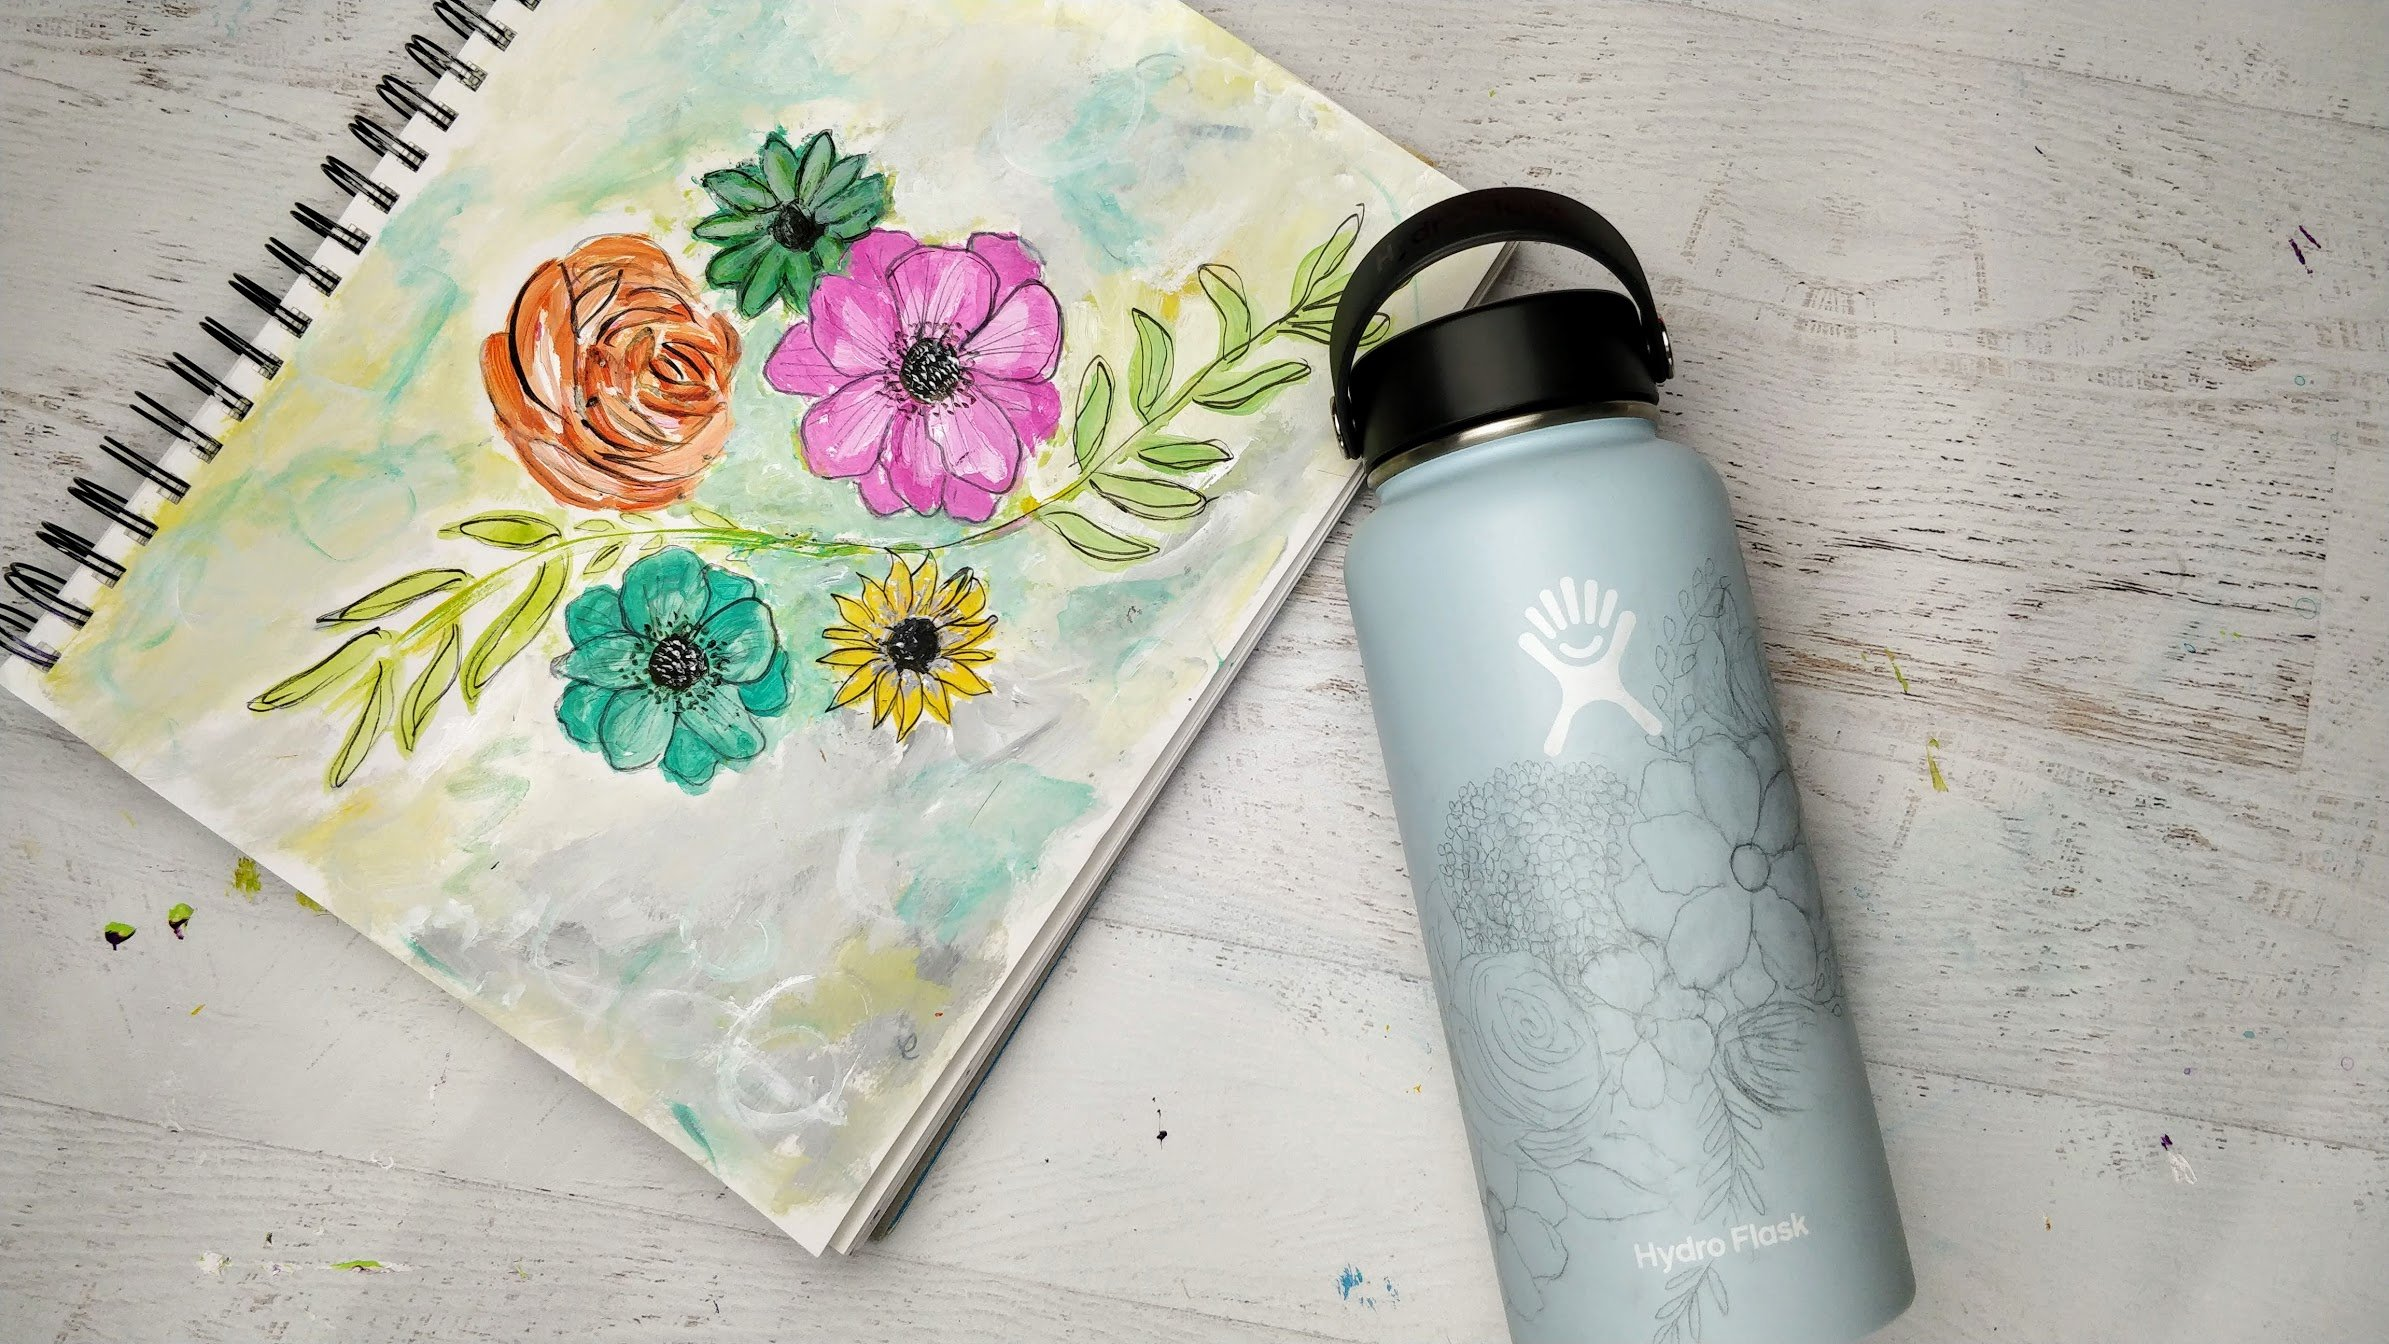 Hydroflask-Flowers-pencil-tracing-design